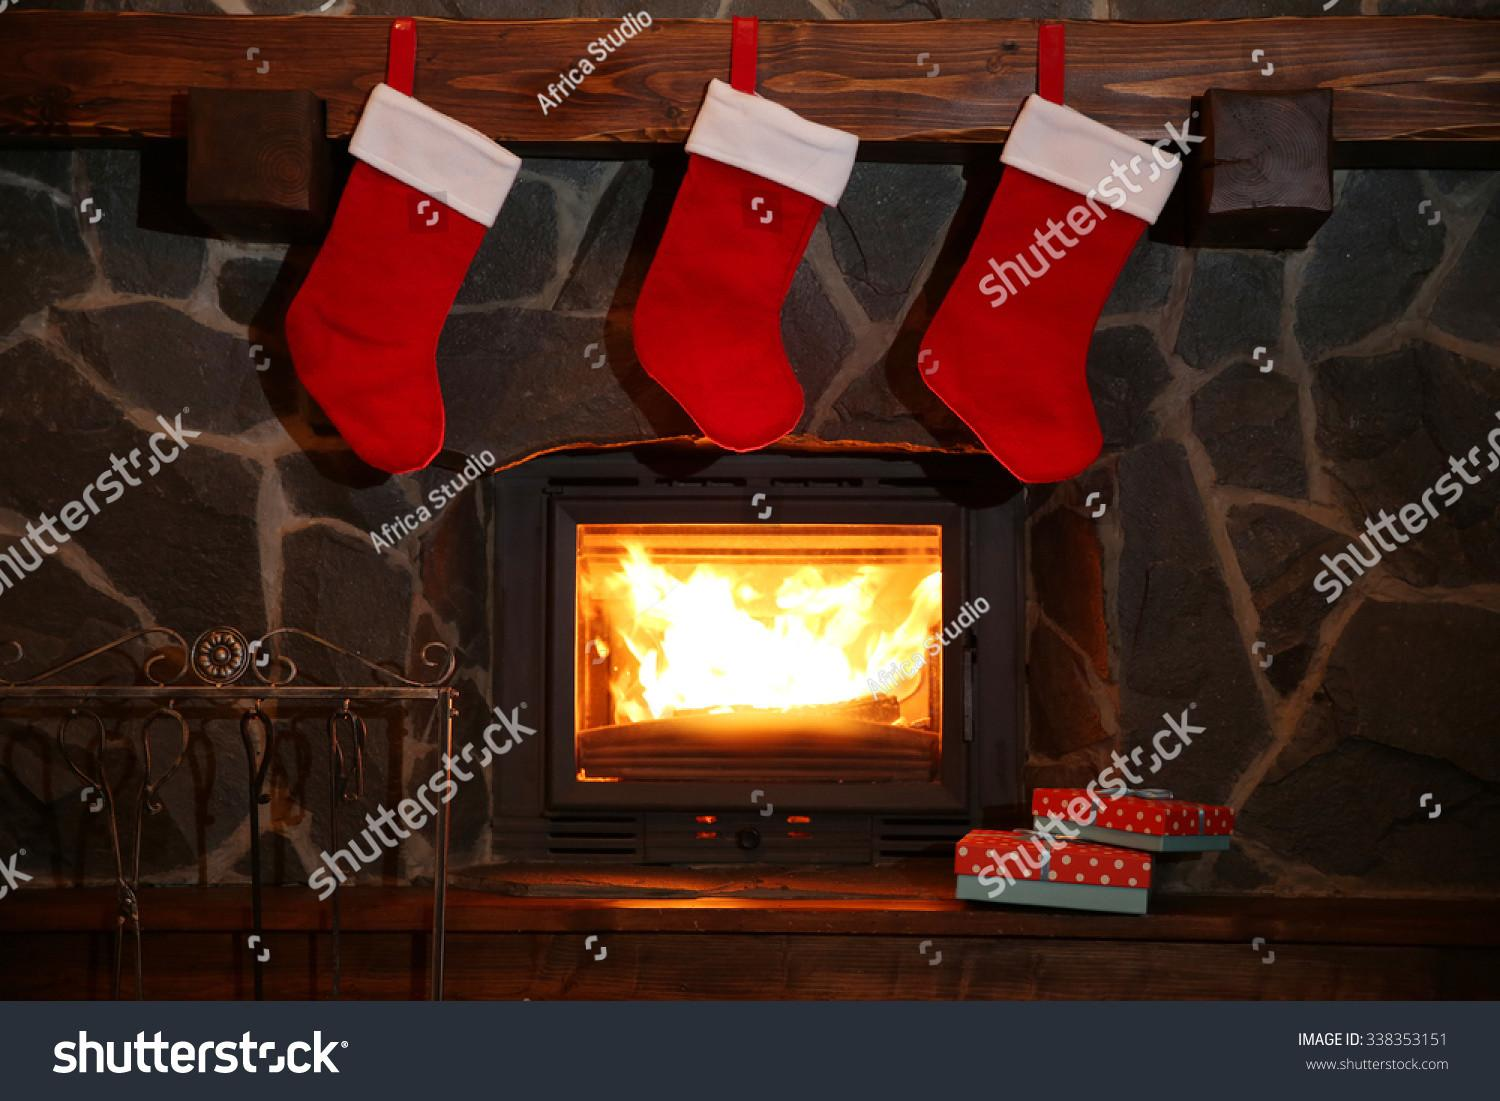 Christmas Stockings Hanging Over Fireplace Midnight